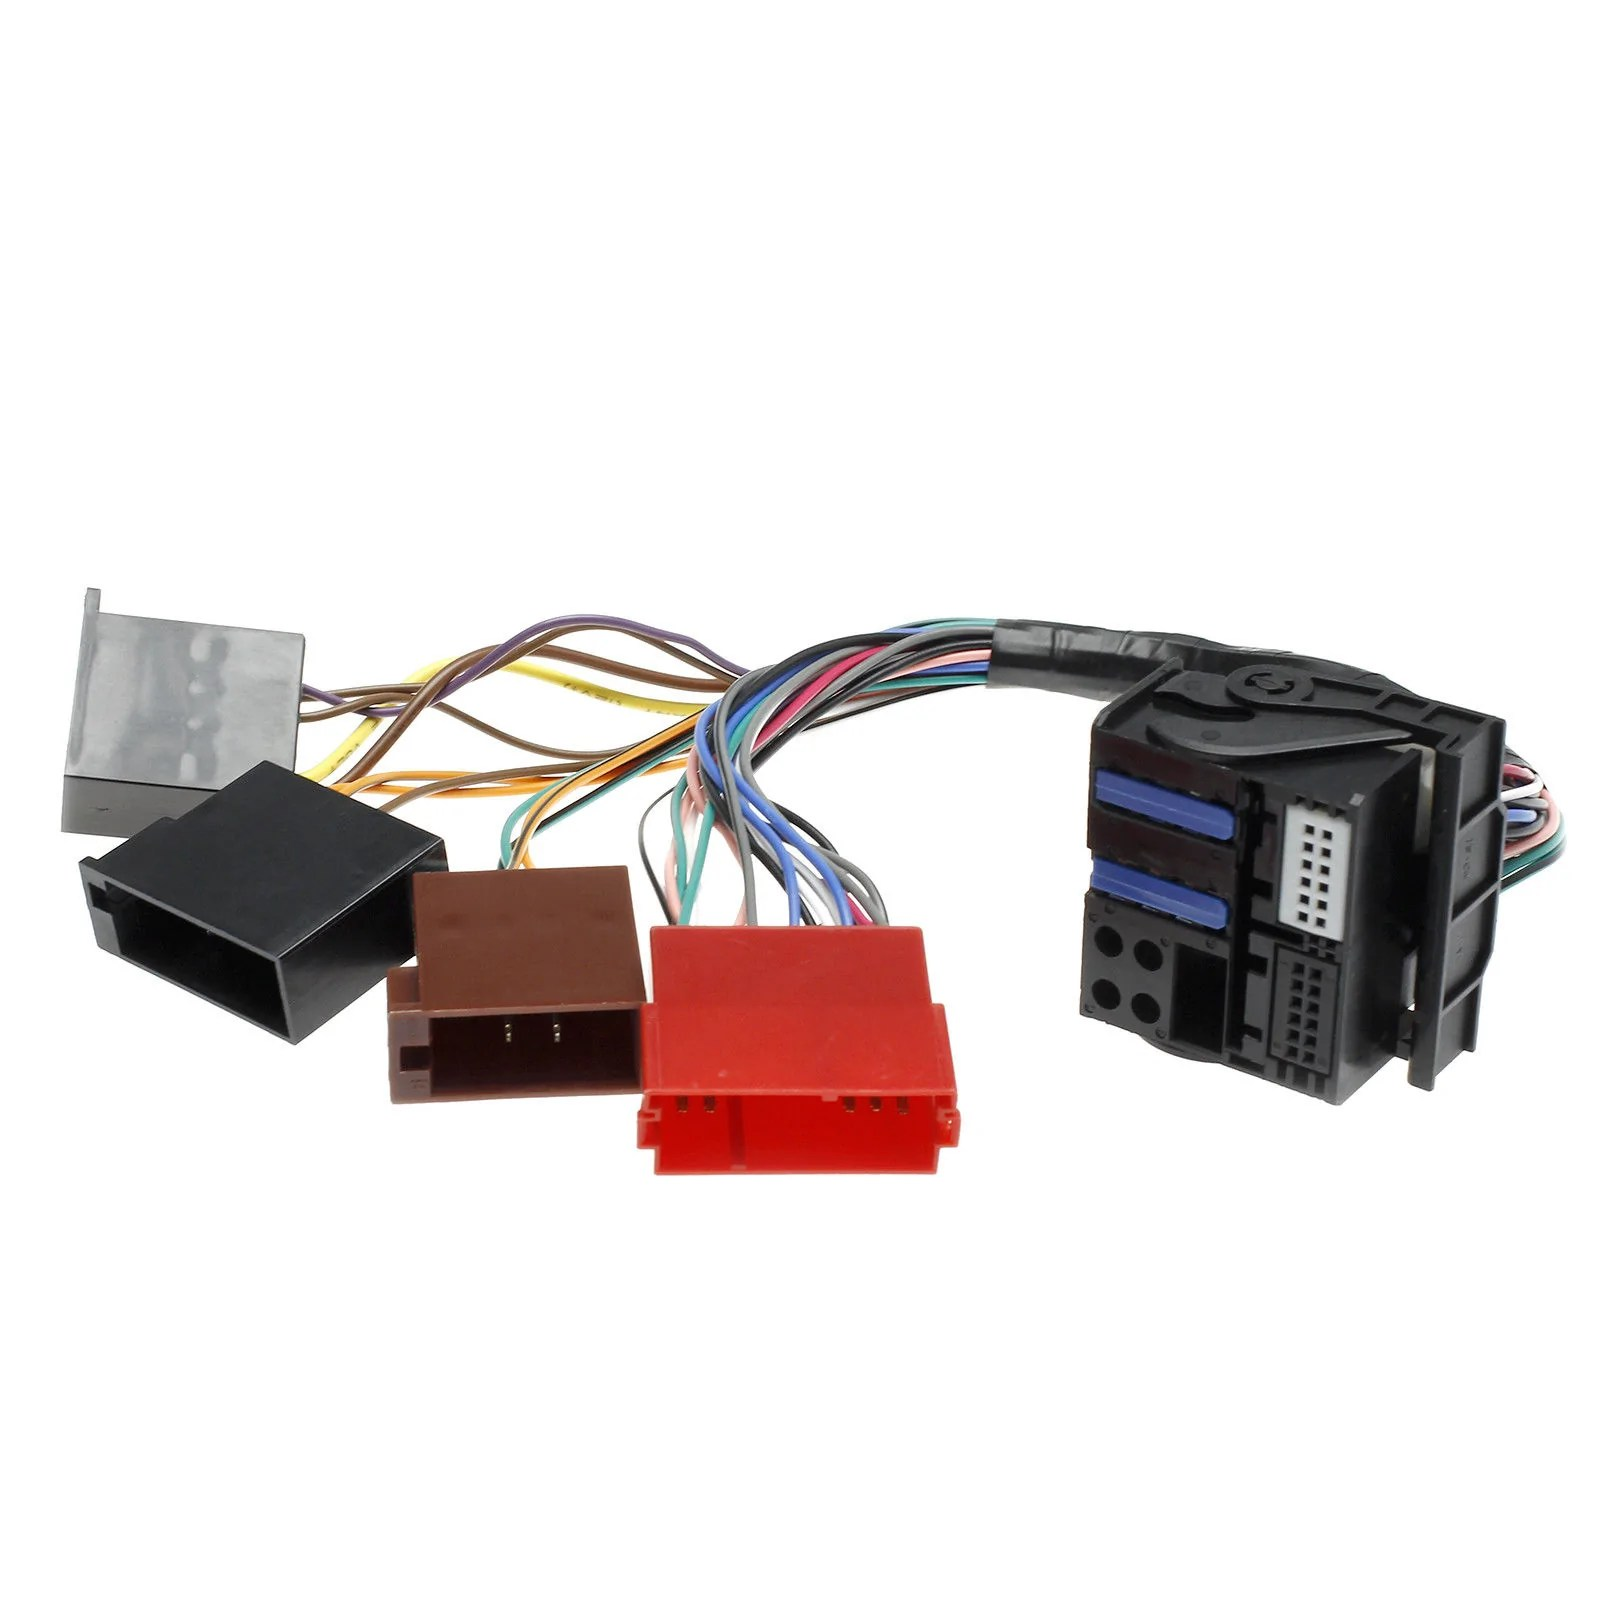 small resolution of adapter wire harness for volkswagen vw premium 5 to premium 6 audi navigation plus rnse